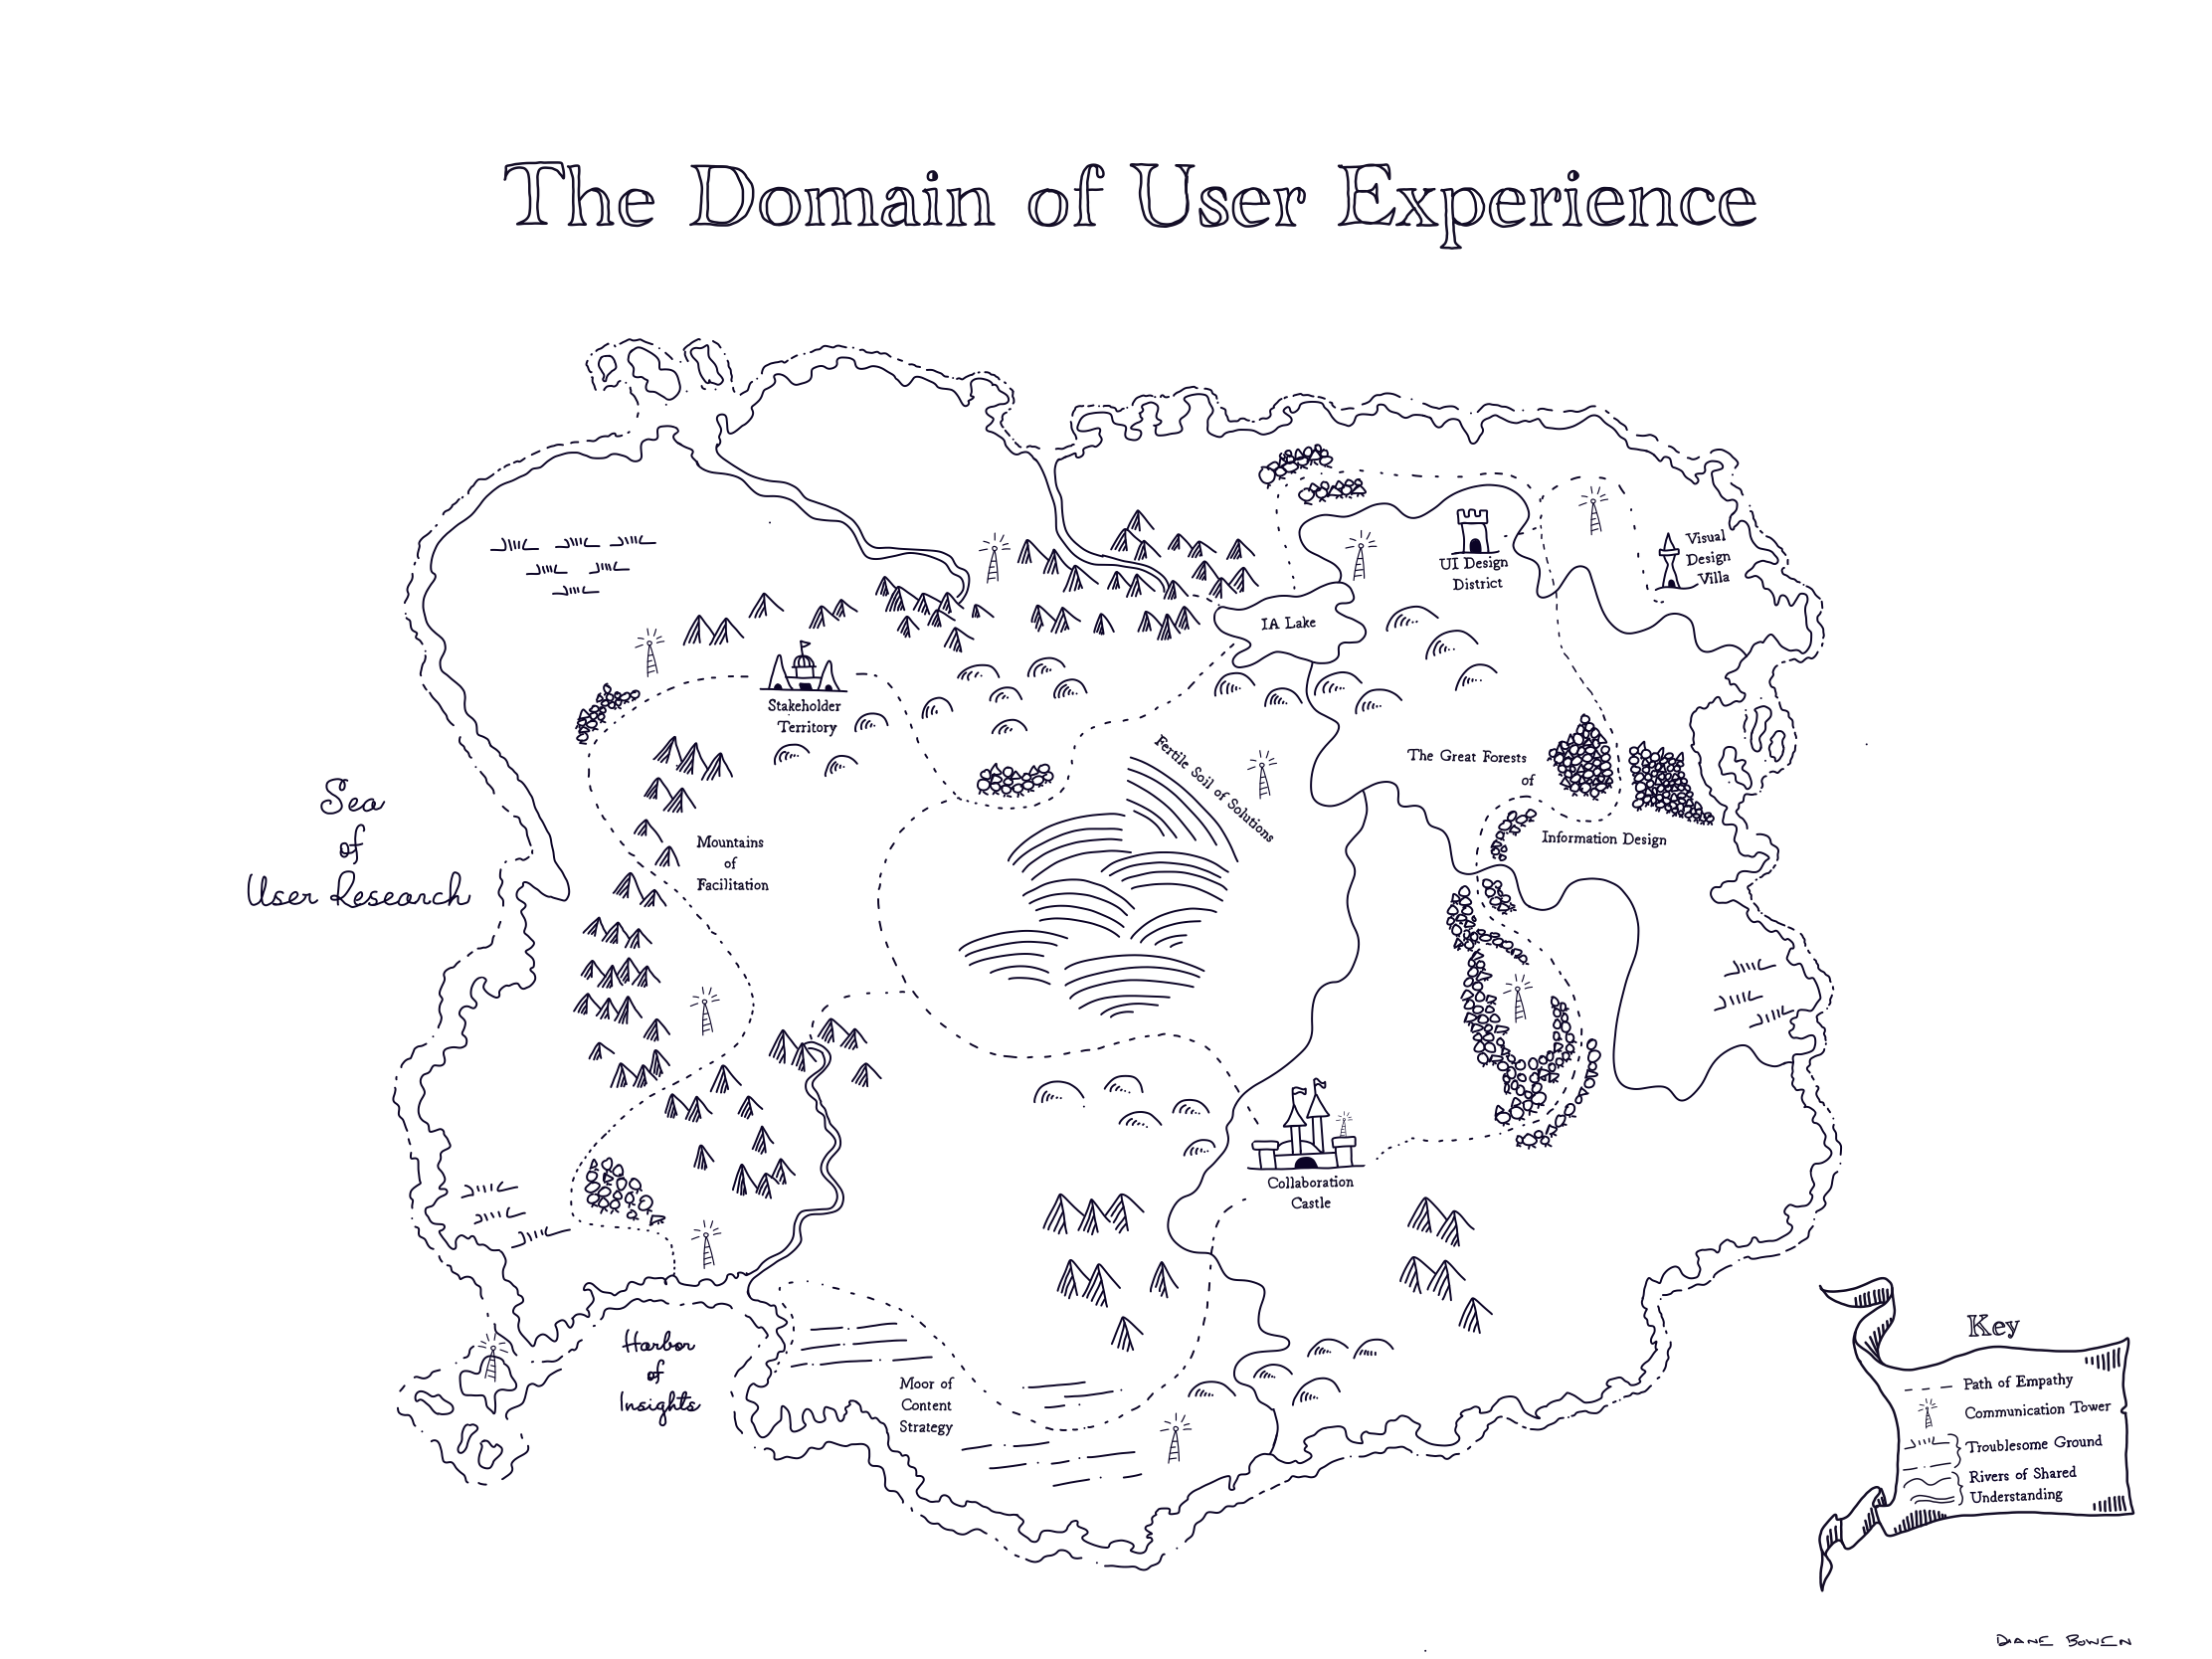 A fantasy map illustrating the activities of the UX practitioner.